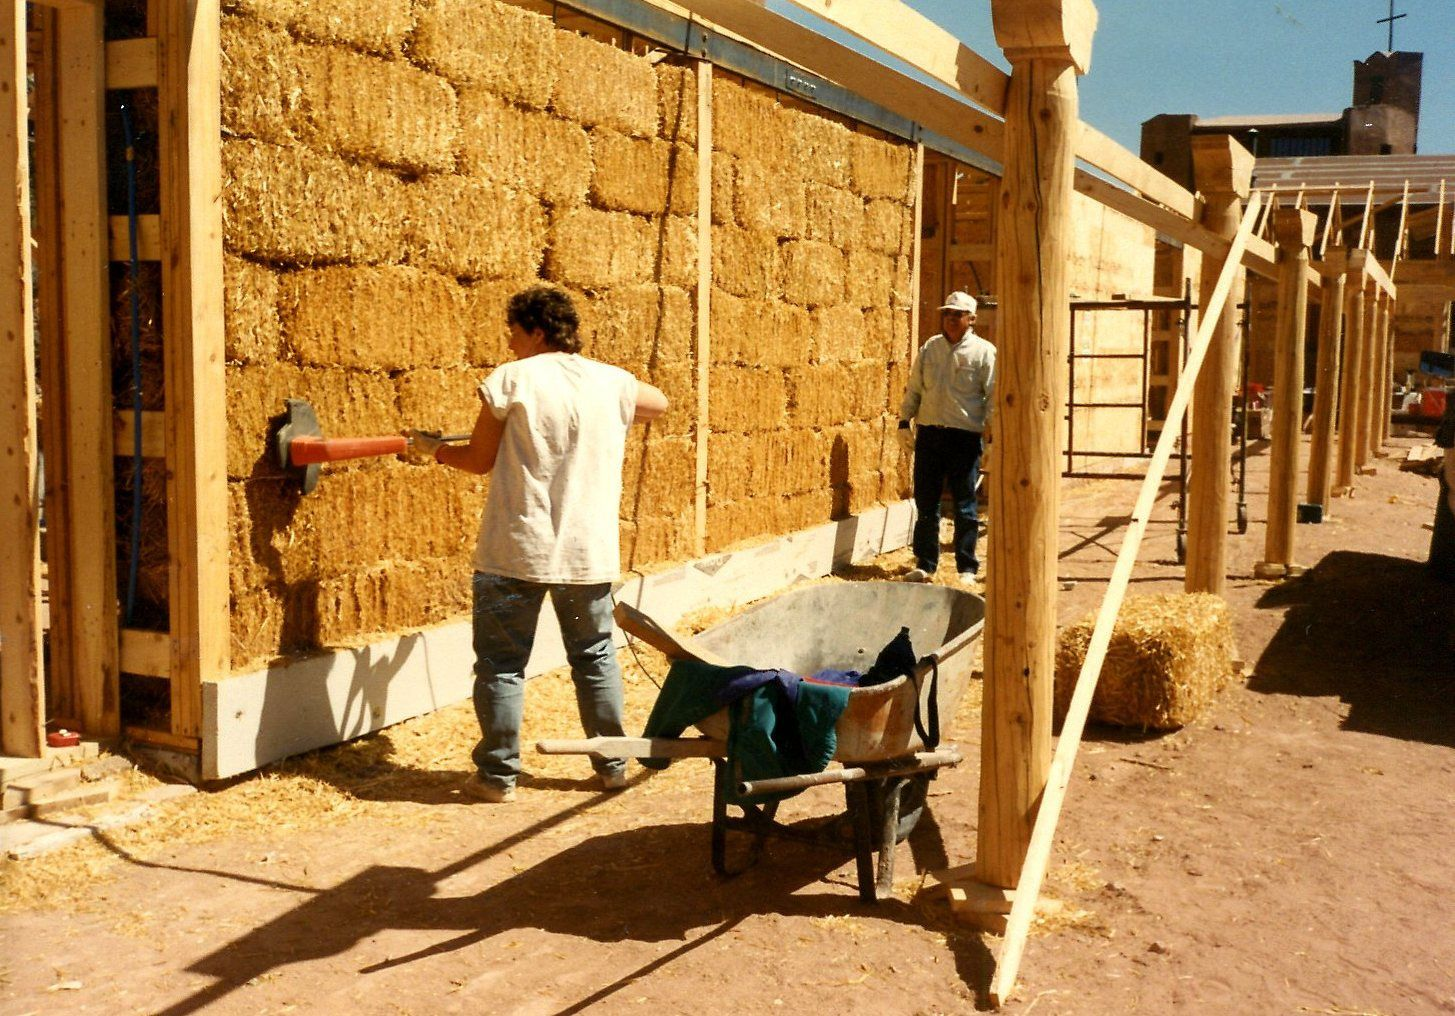 Straw bales provide environmentally sound insulation